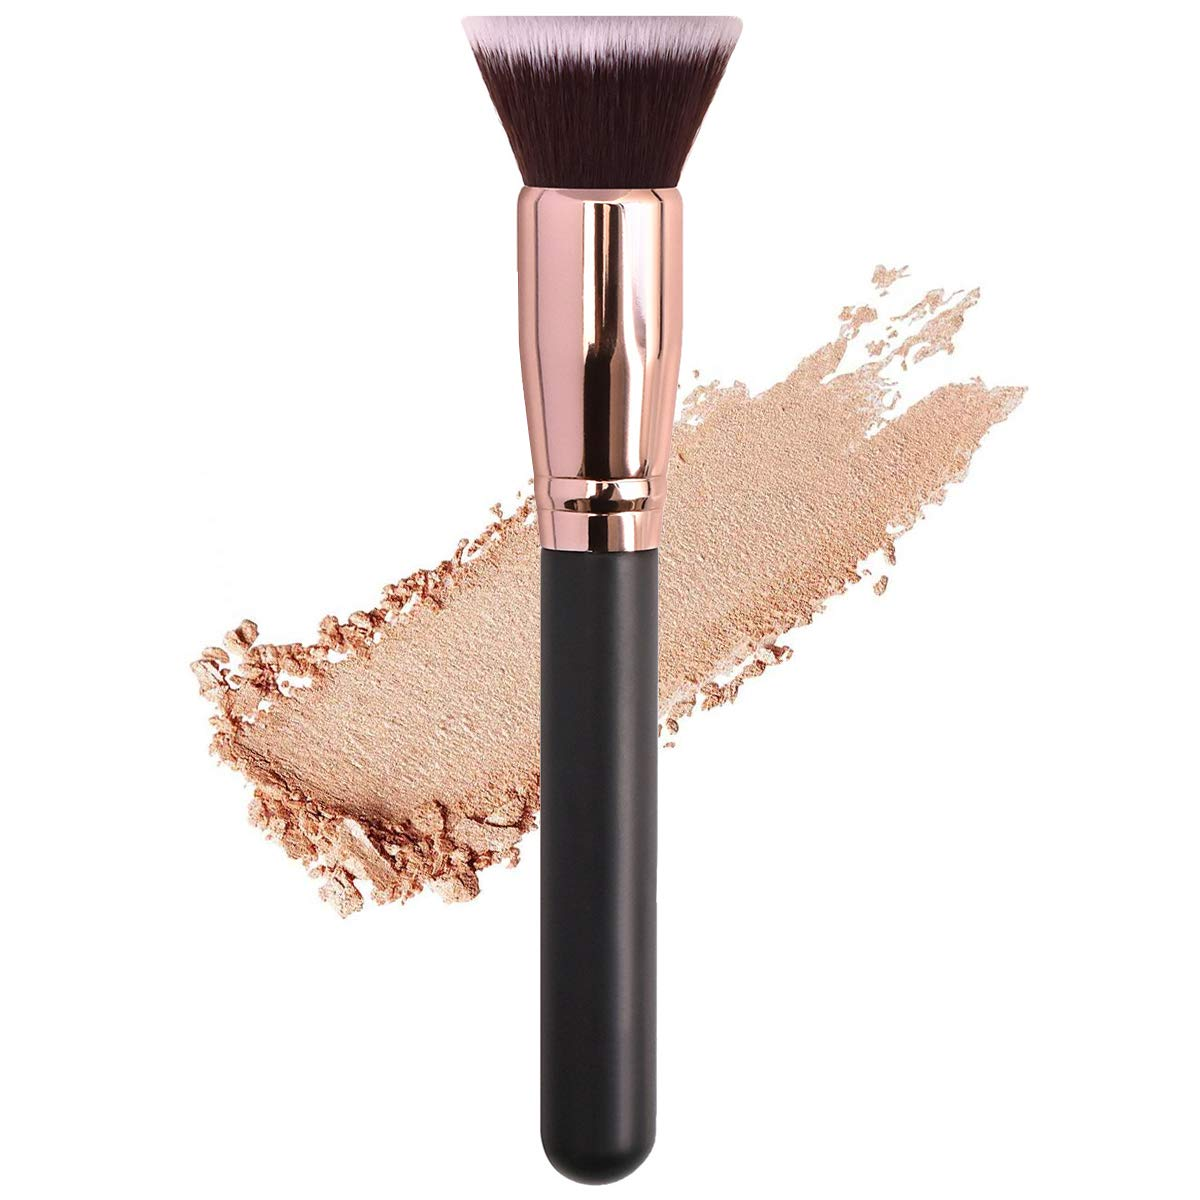 Flat Top Kabuki Brush Powder Foundation Makeup Brush, KINGMAS Premium Makeup Brush for Buffing Liquid, Cream, Powder, Blending Face Brush